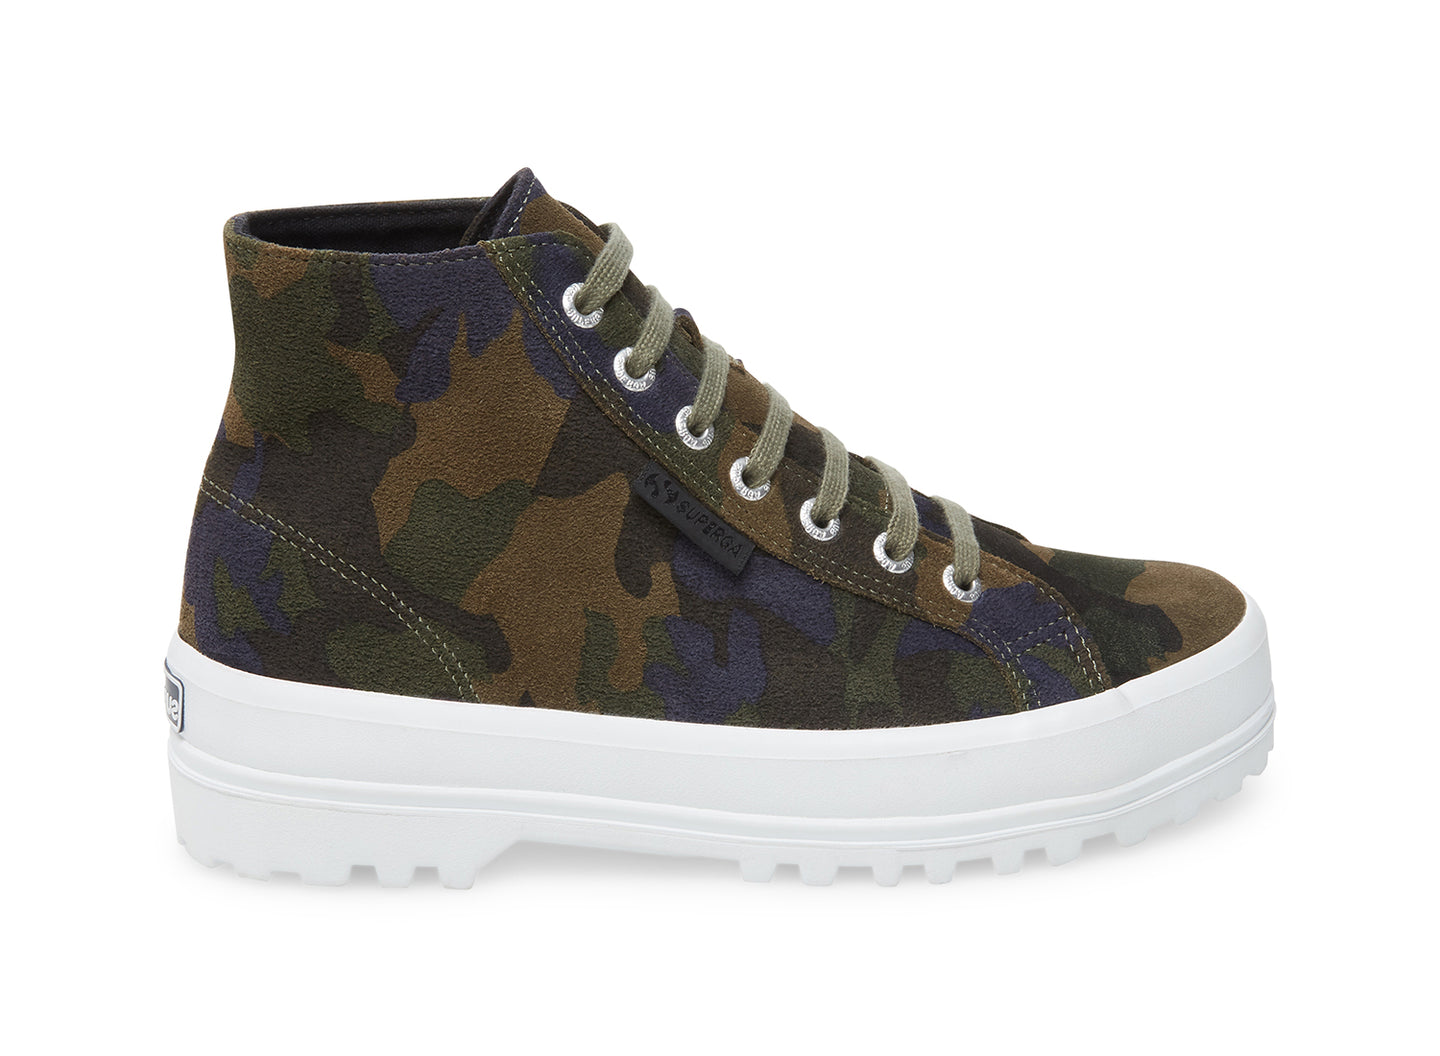 2341-SUECAMOW CAMOUFLAGE - Women's